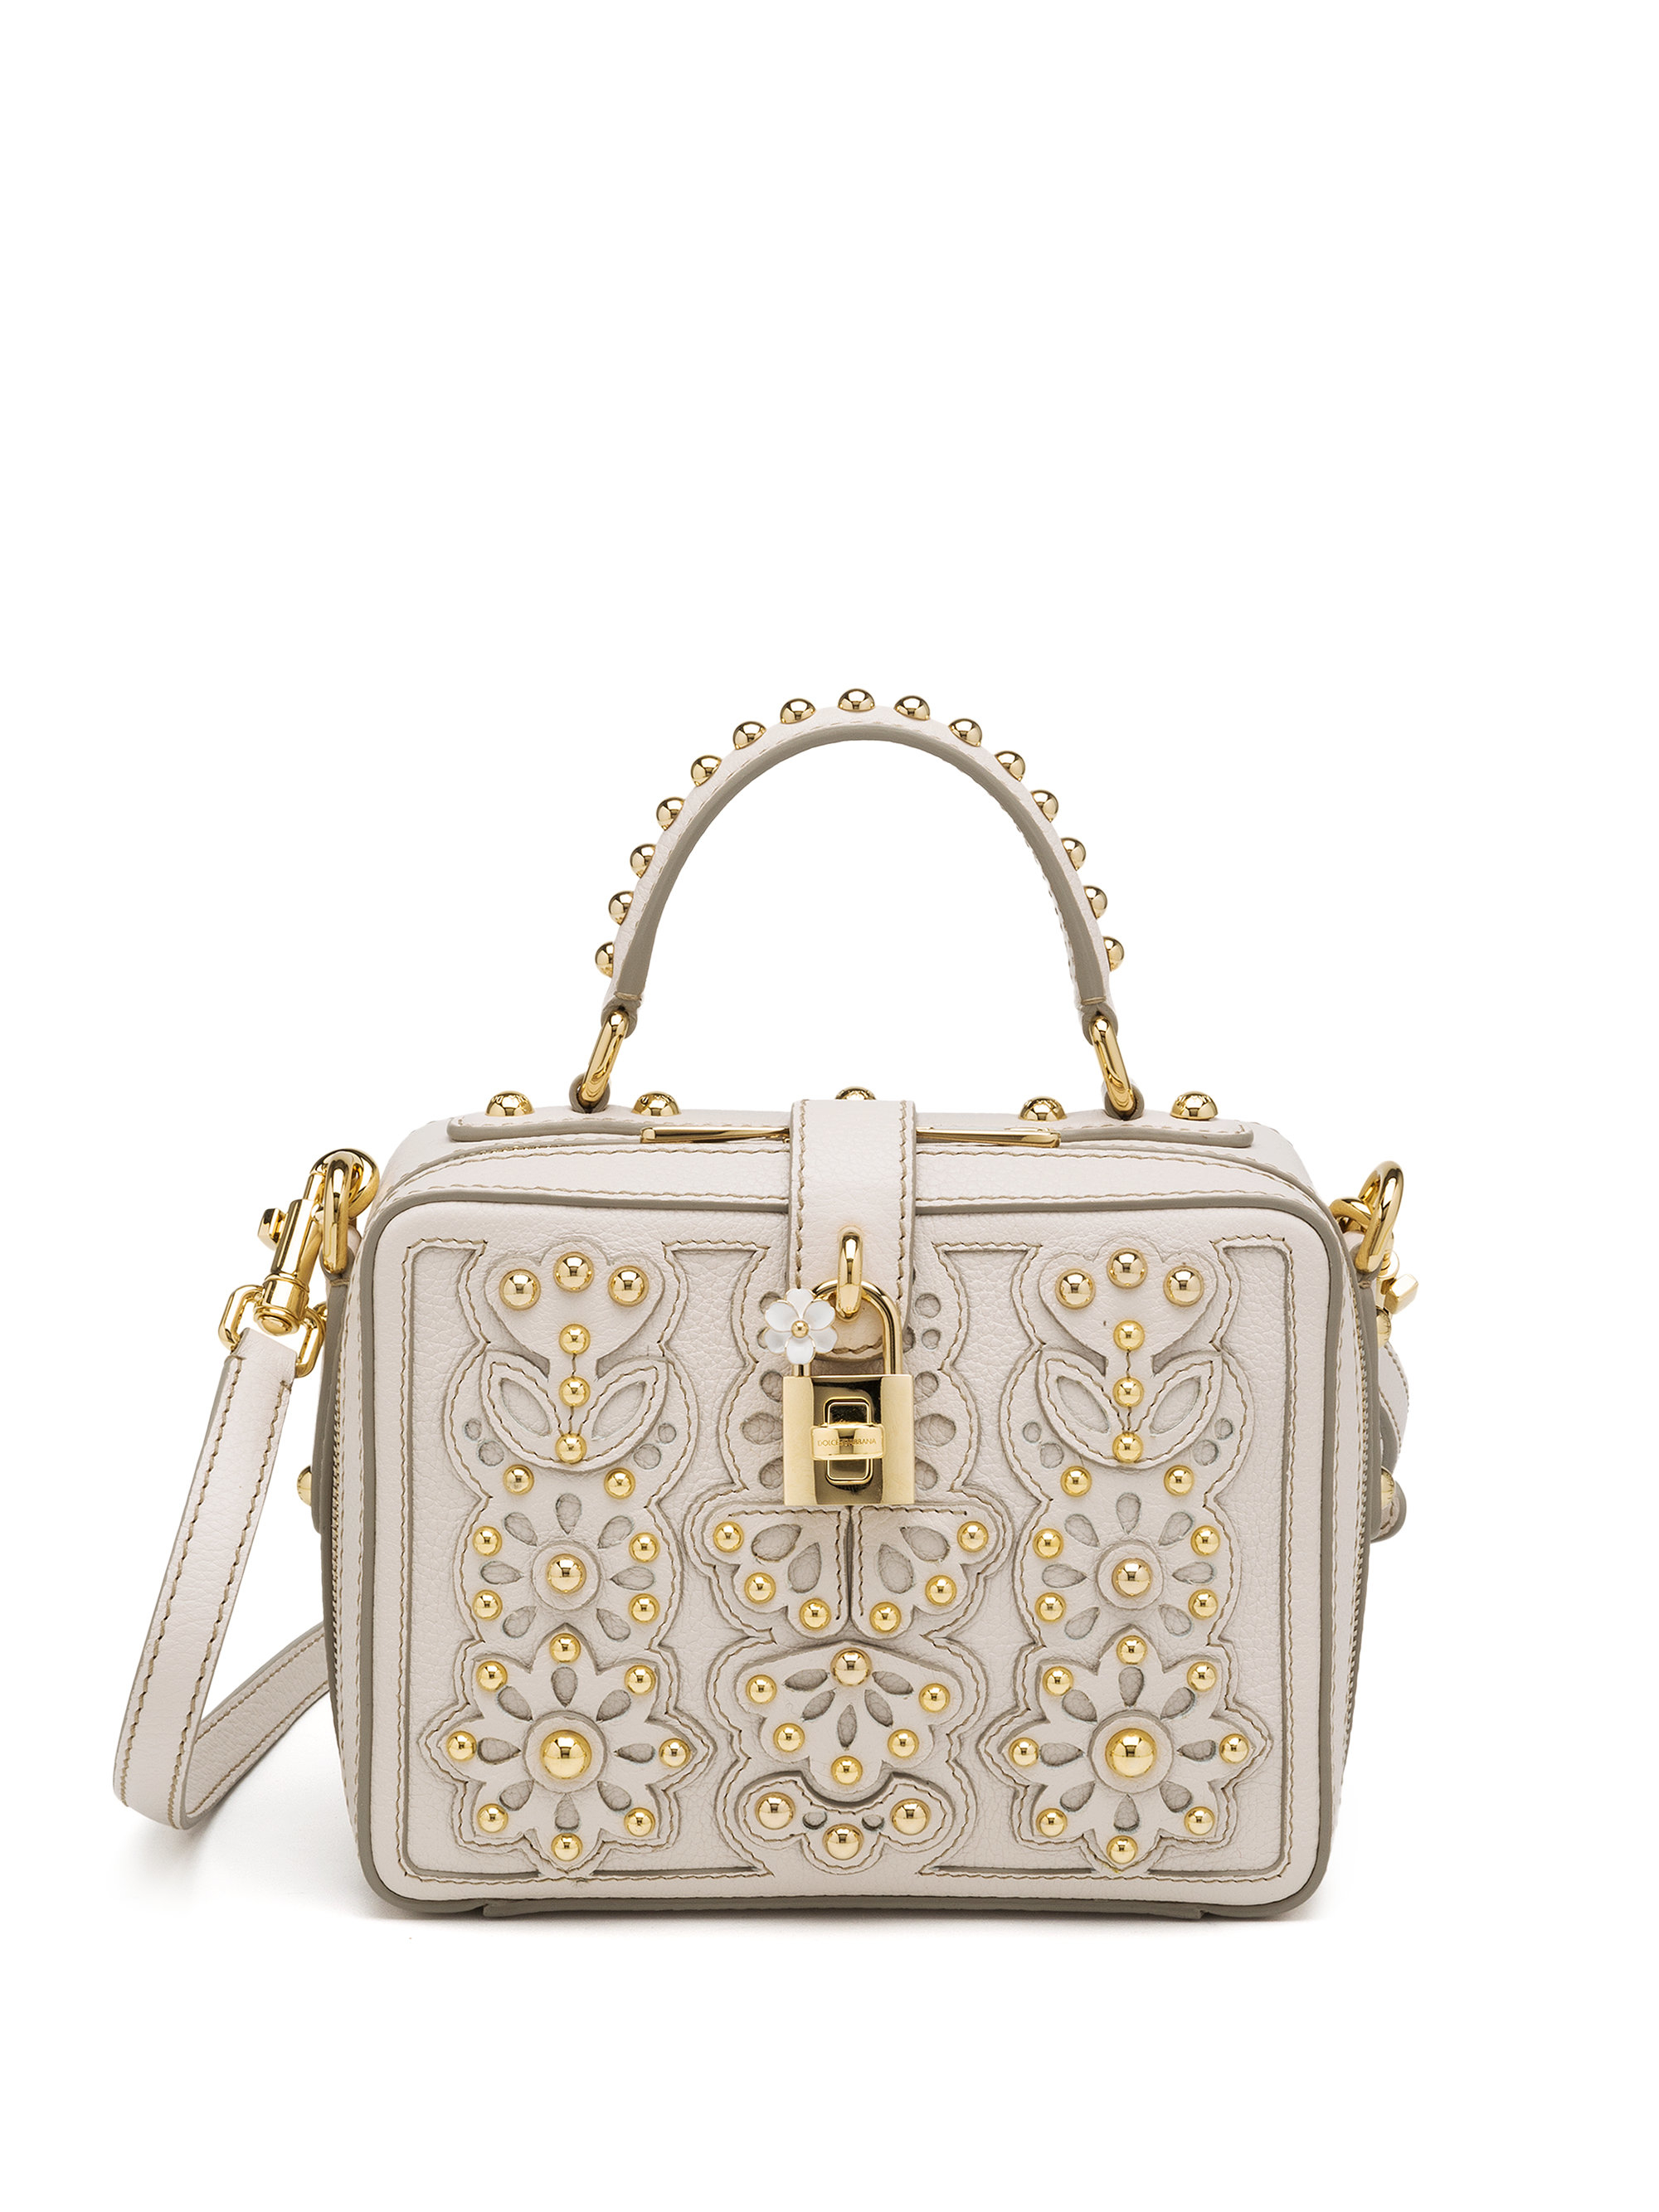 Lyst - Dolce   Gabbana Studded Laser-cut Top-handle Bag in Natural b1ad315914db0